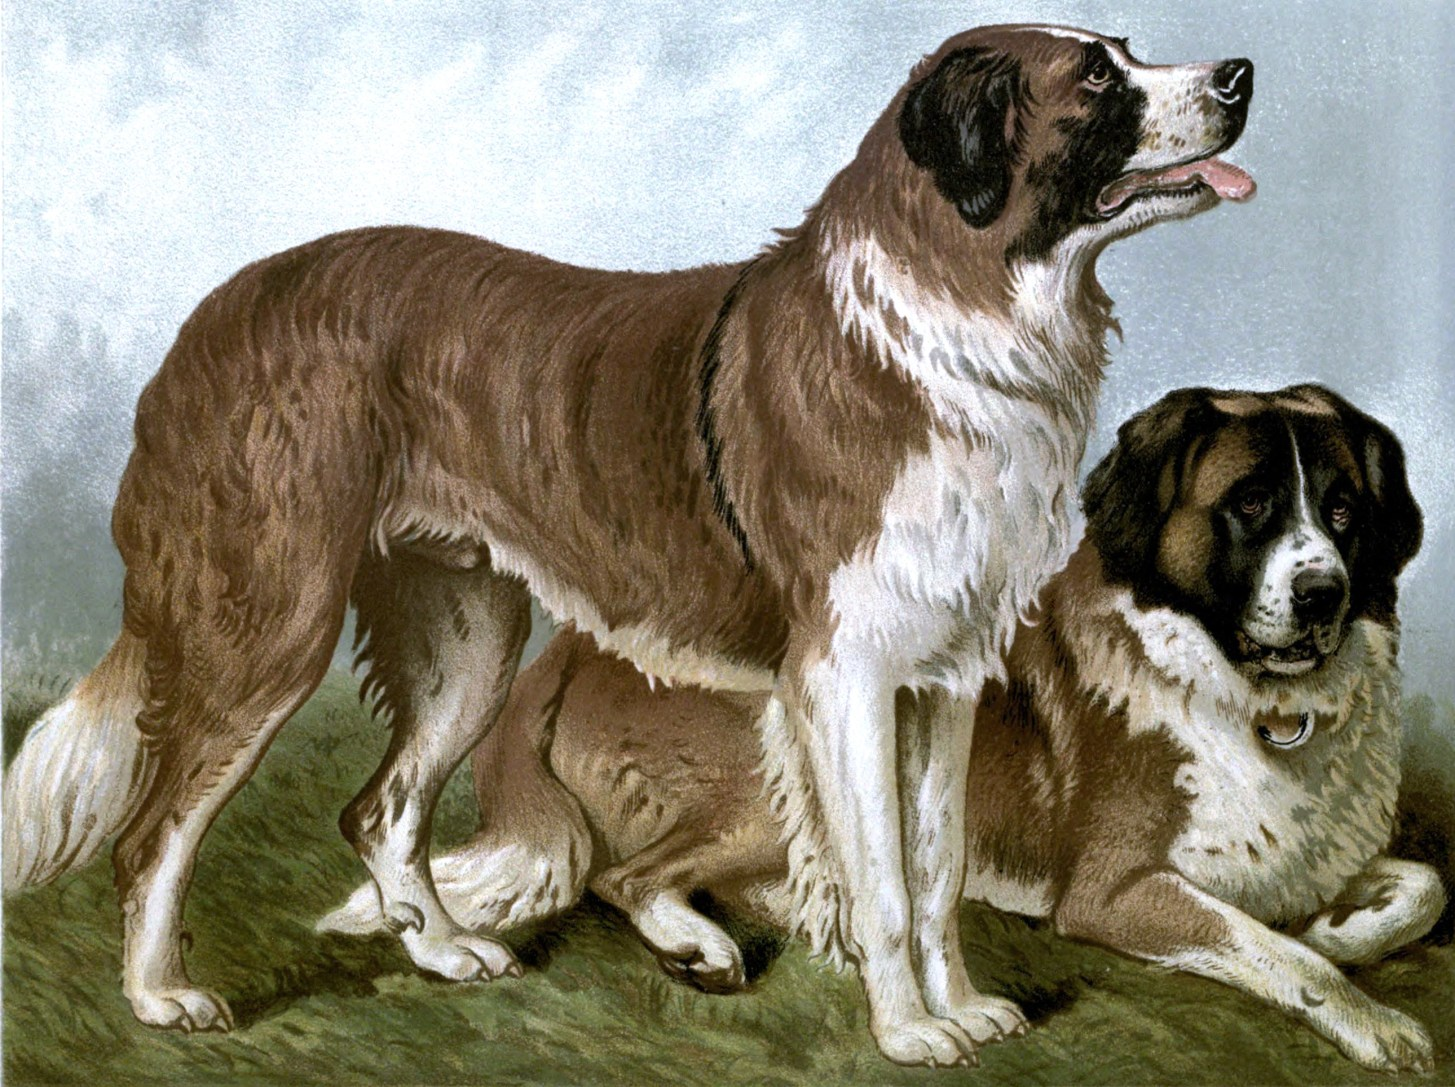 Free vintage st bernard dogs illustration public domain.